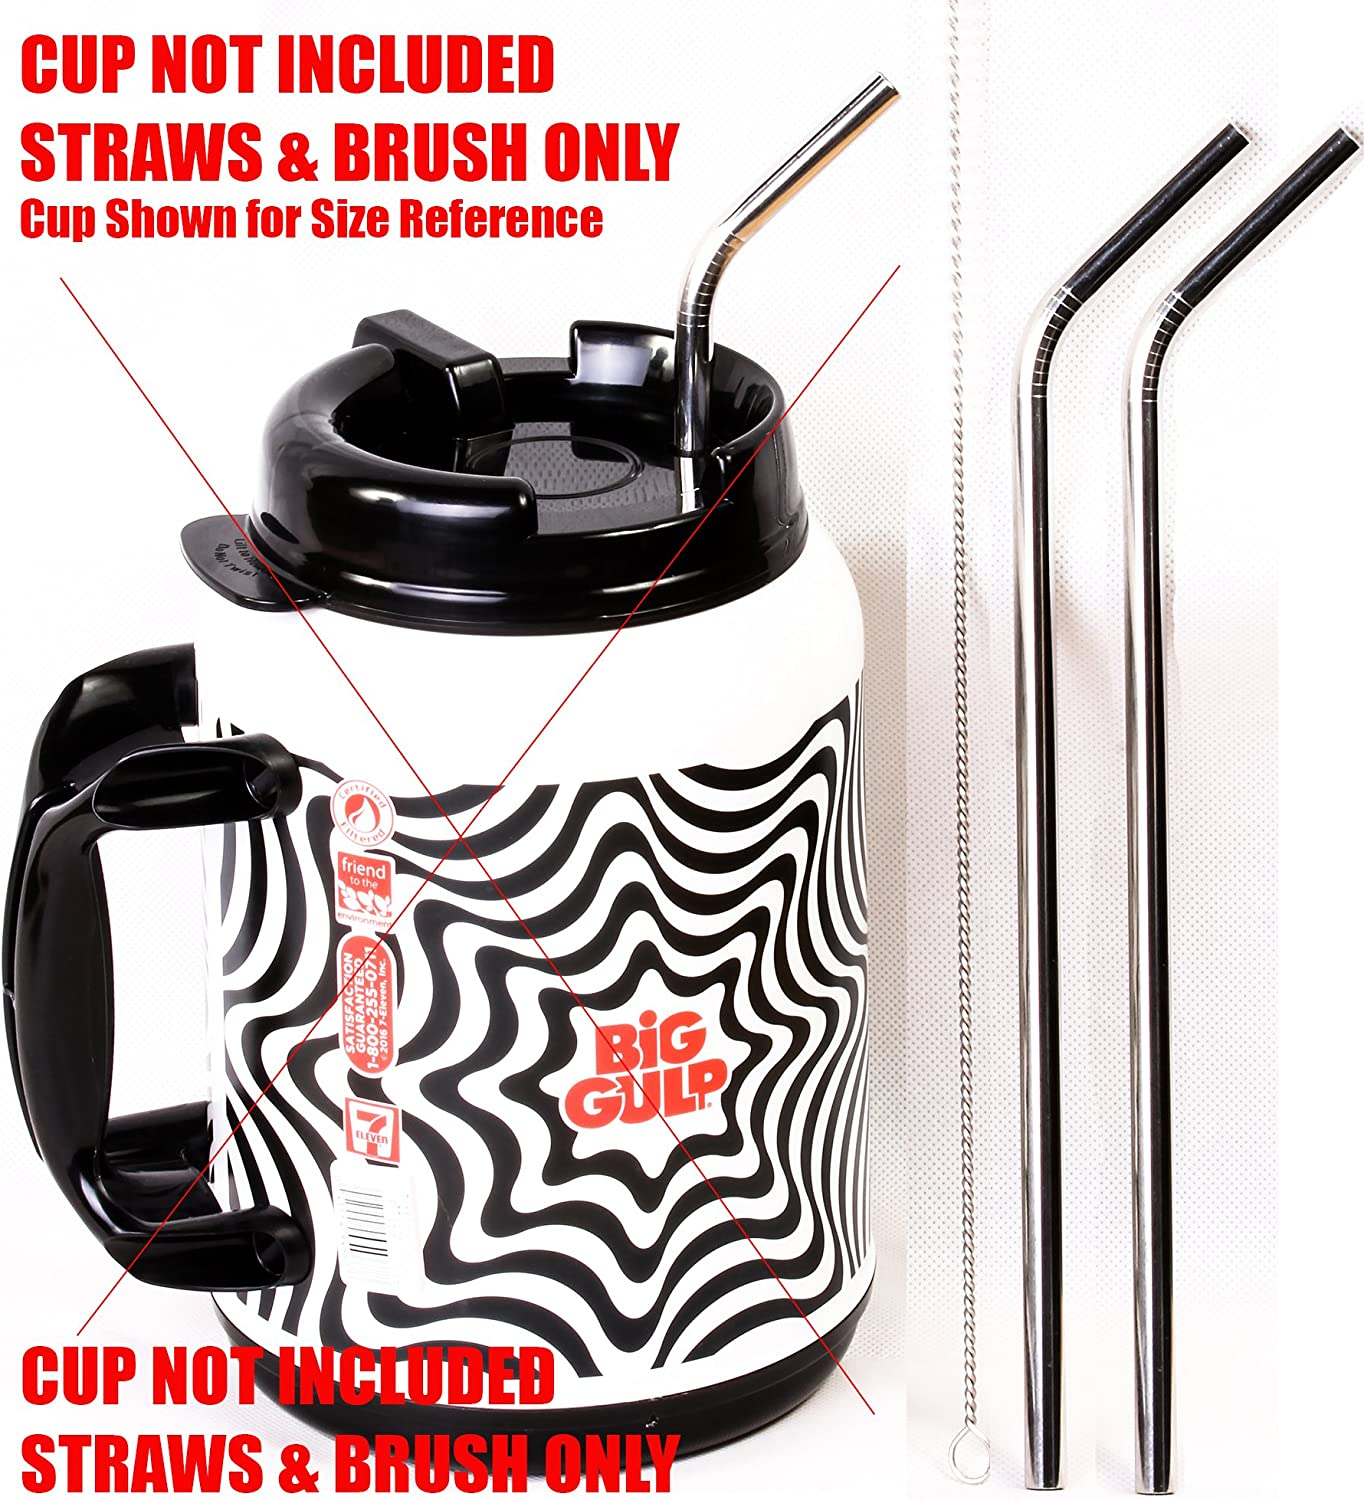 "2 Big Gulp 11.5"" JUMBO Stainless Steel Straw for 64 oz LONG Drinking Wide Insulated Whirley Travel Mug 7-11 Truck Stop Cup"